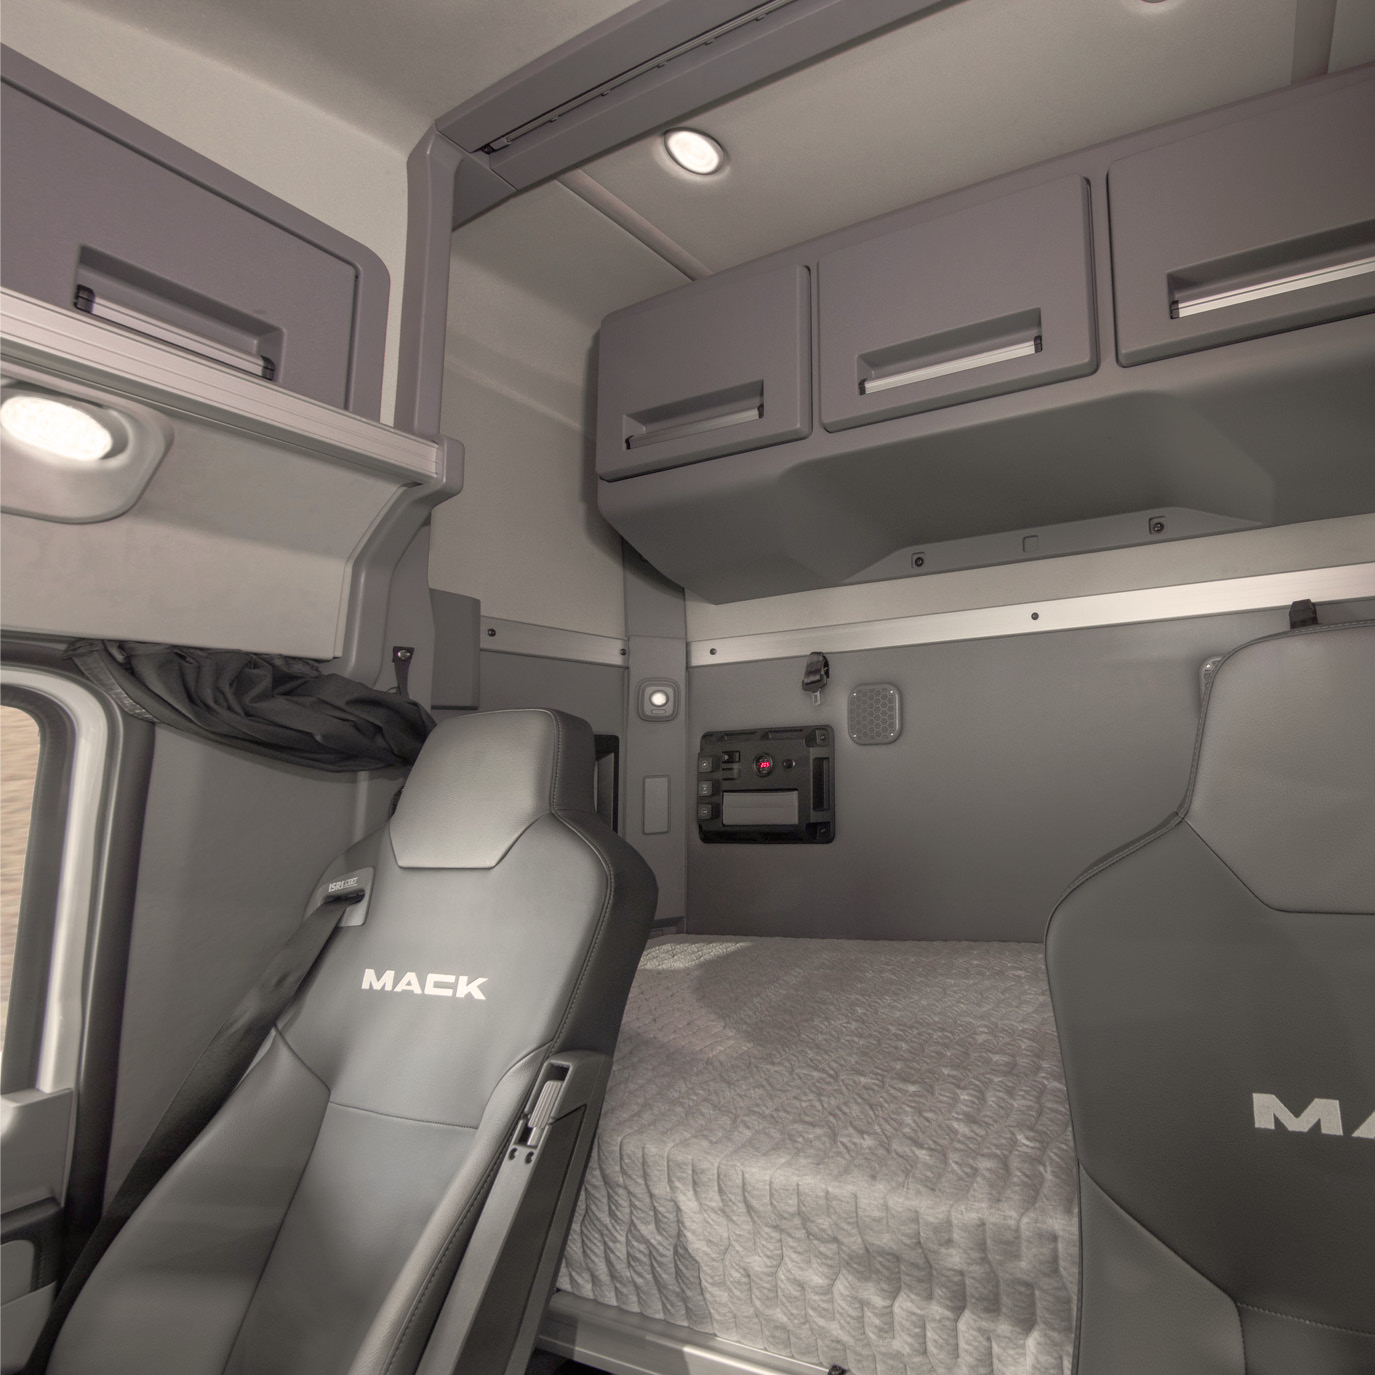 "Driver view of the Anthem 36"" Stand Up Sleeper interior environment with sleeper bunk.."